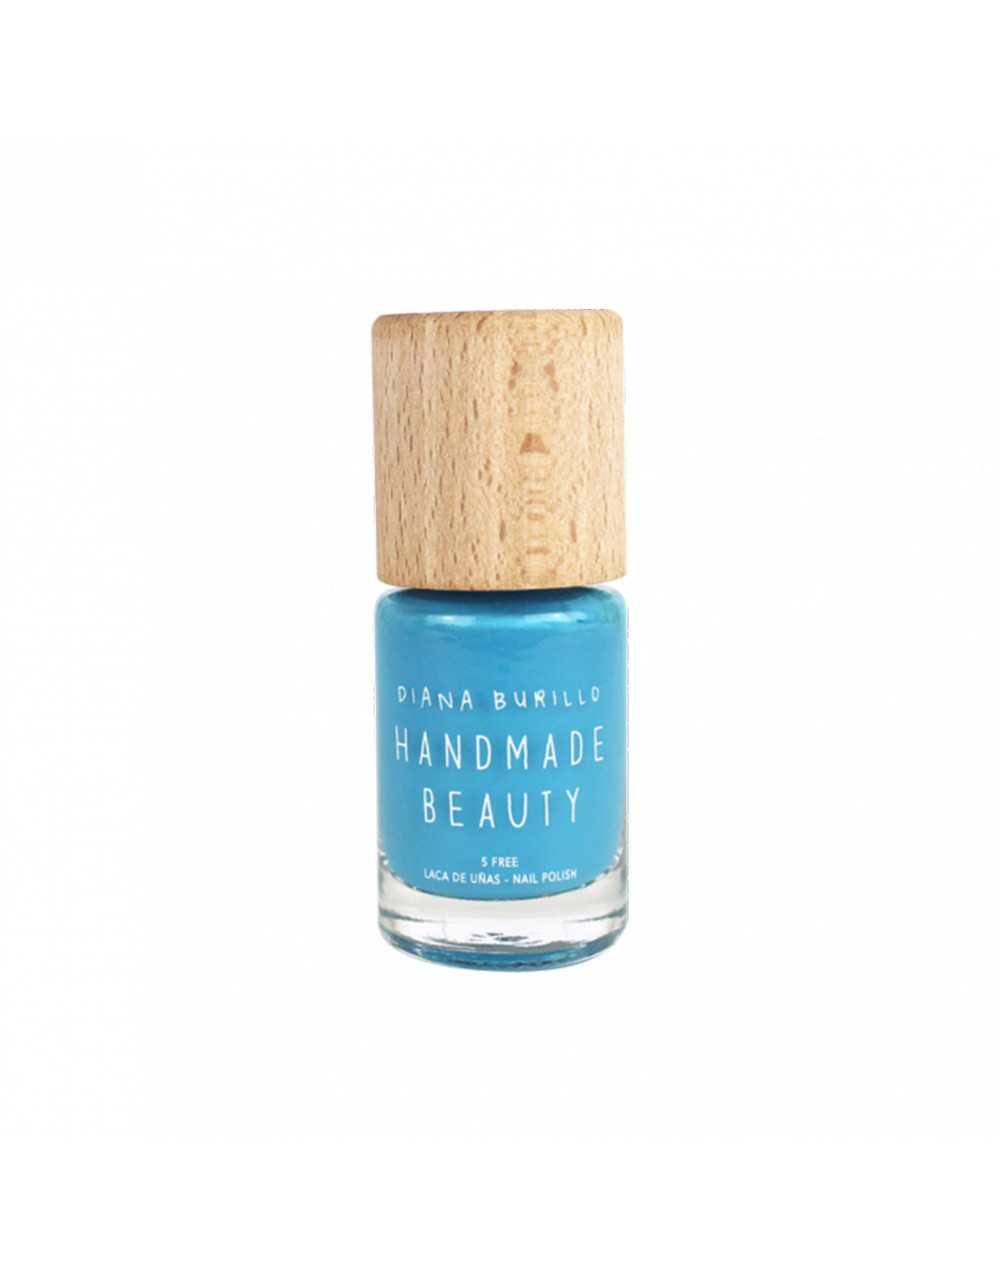 Esmalte de uñas Handmade Beauty 5 free, ecológico color azul celeste reconfortante Blueberry